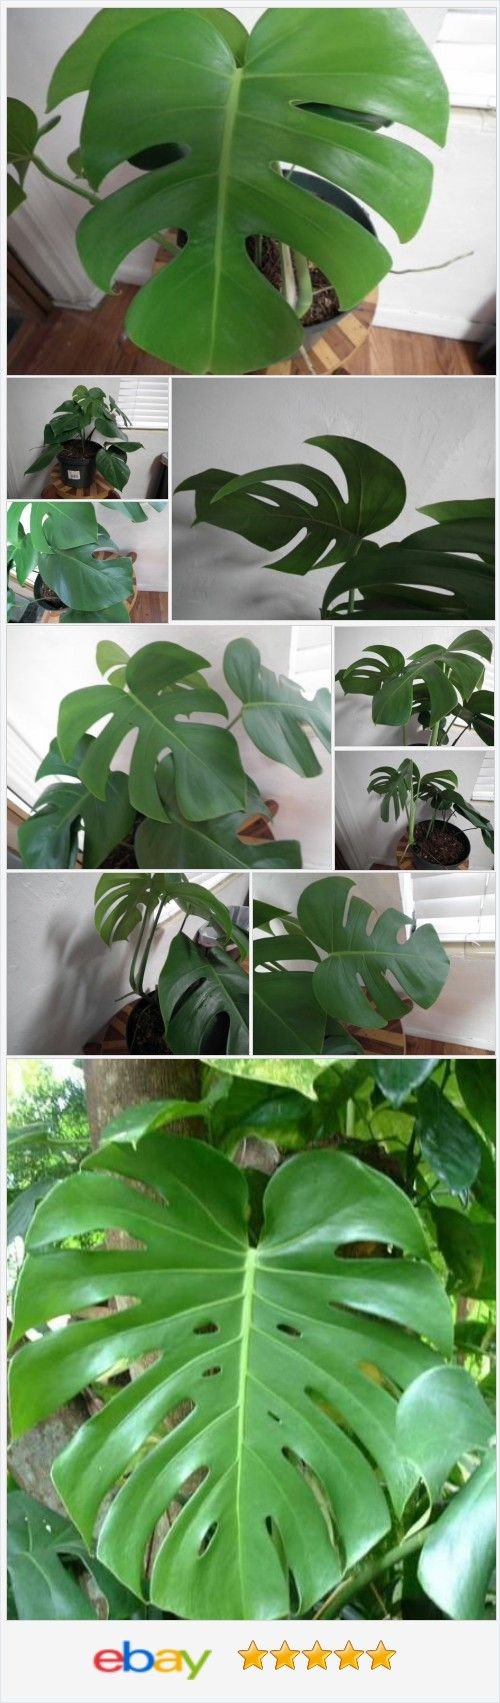 Large Aroid Philodendron Monstera Tropical live plant Vine Awesome! @urgoodbuyz